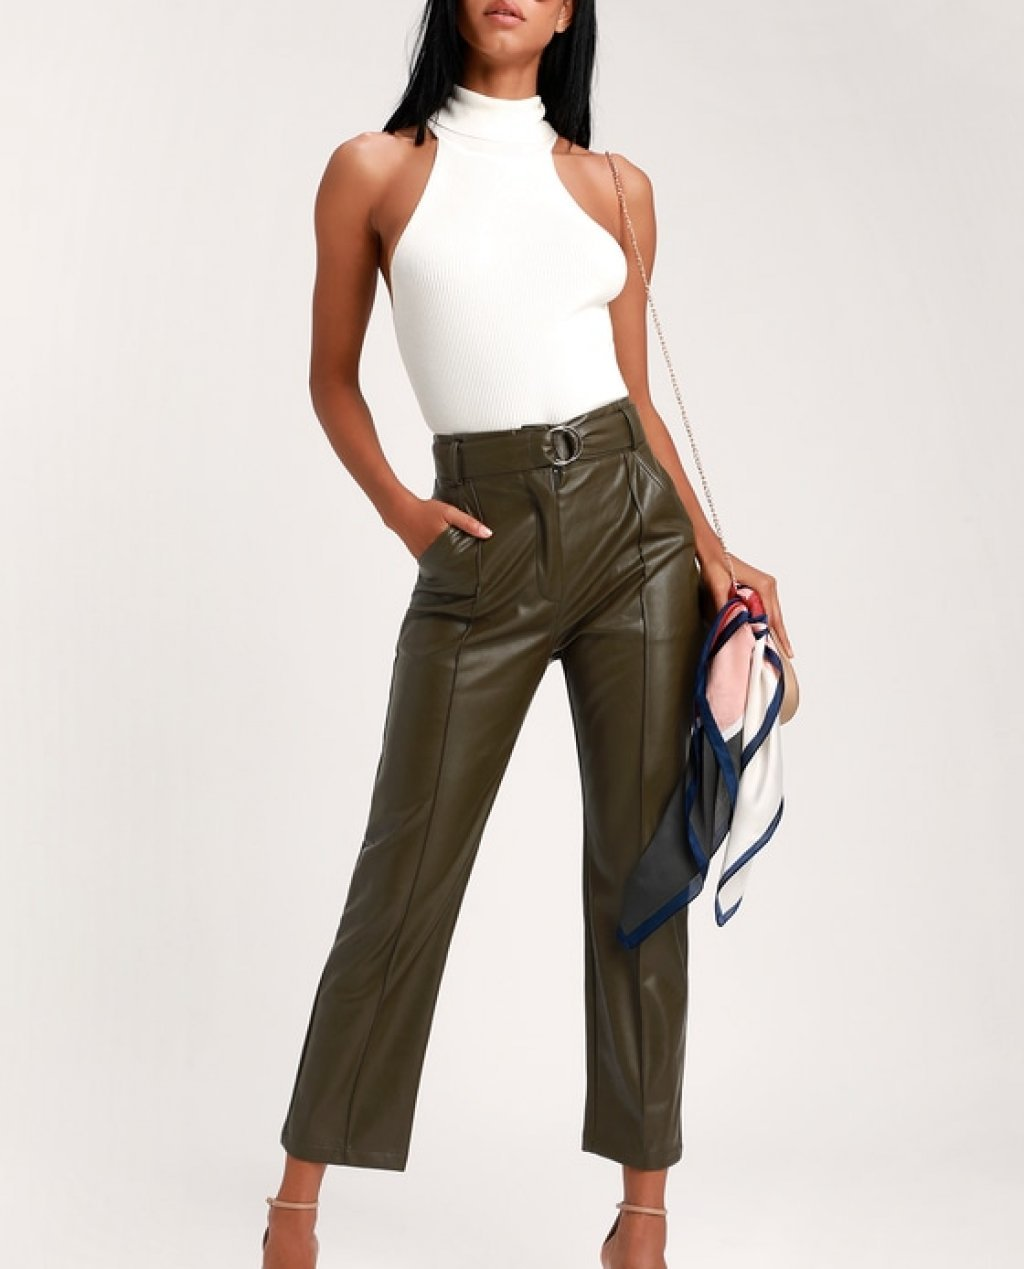 Leanna Olive Green Vegan Leather Belted Pants